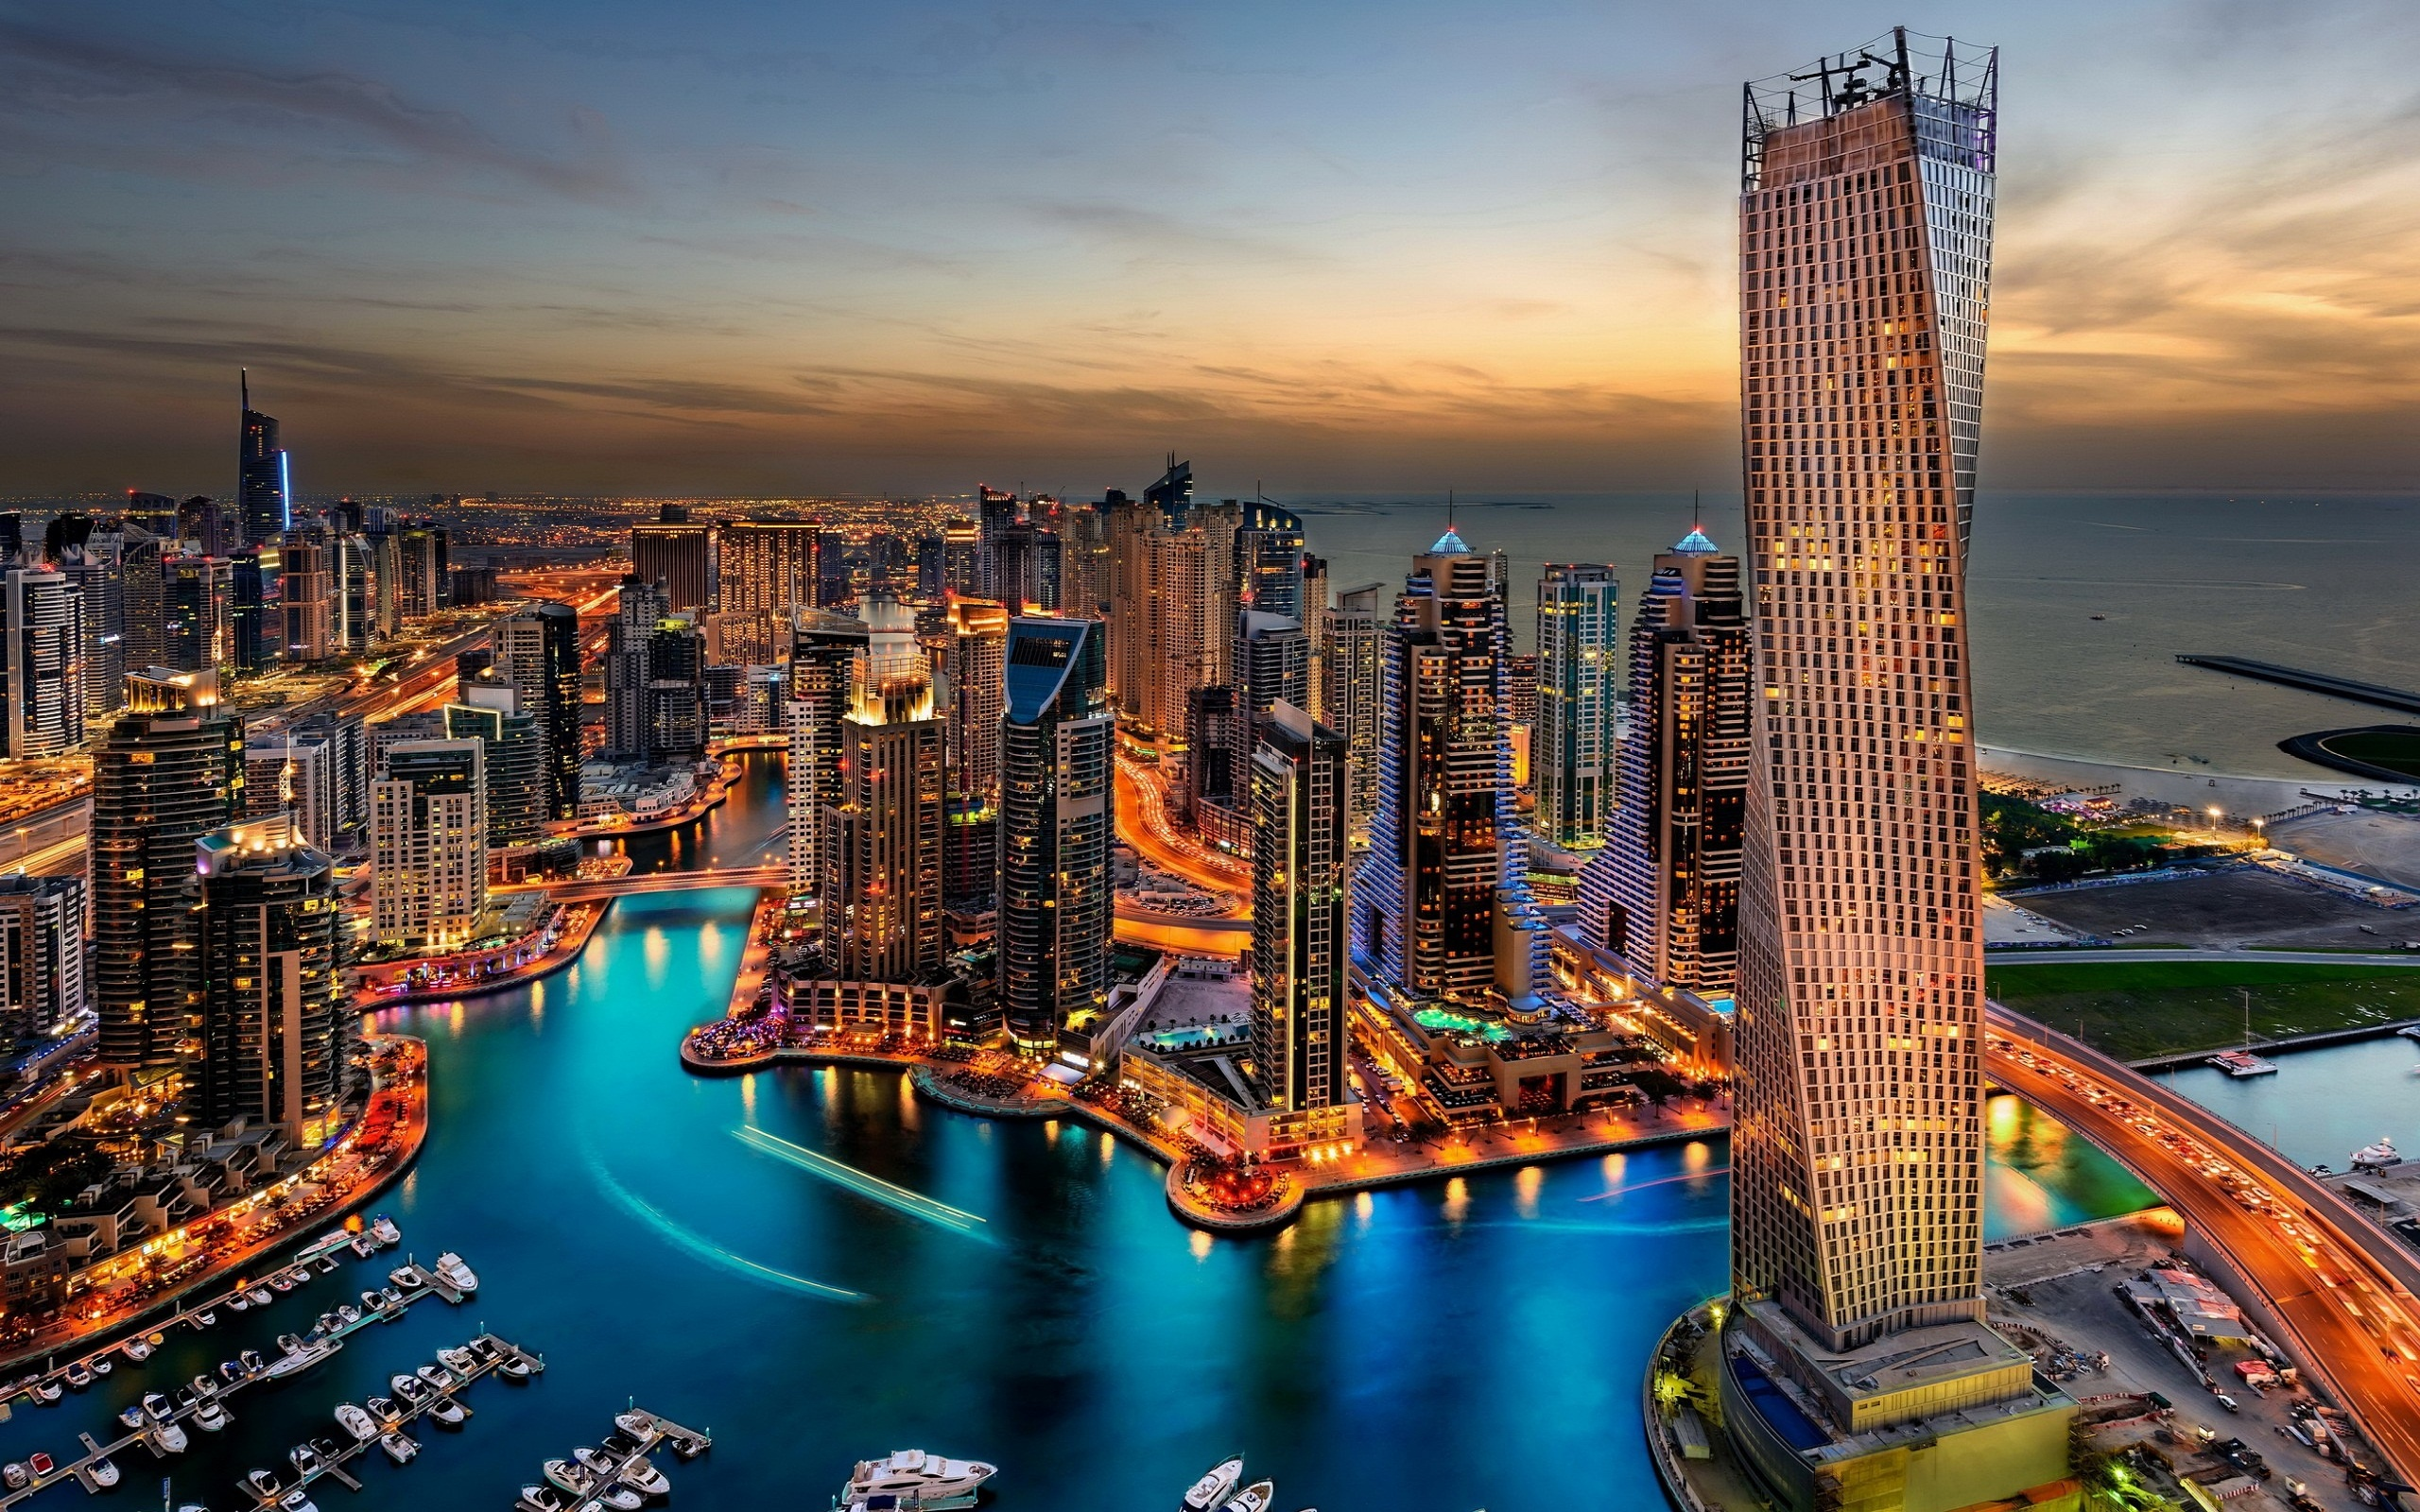 Luxury hotels in dubai wallpapers 2560x1600 1733201 for The top hotels in dubai